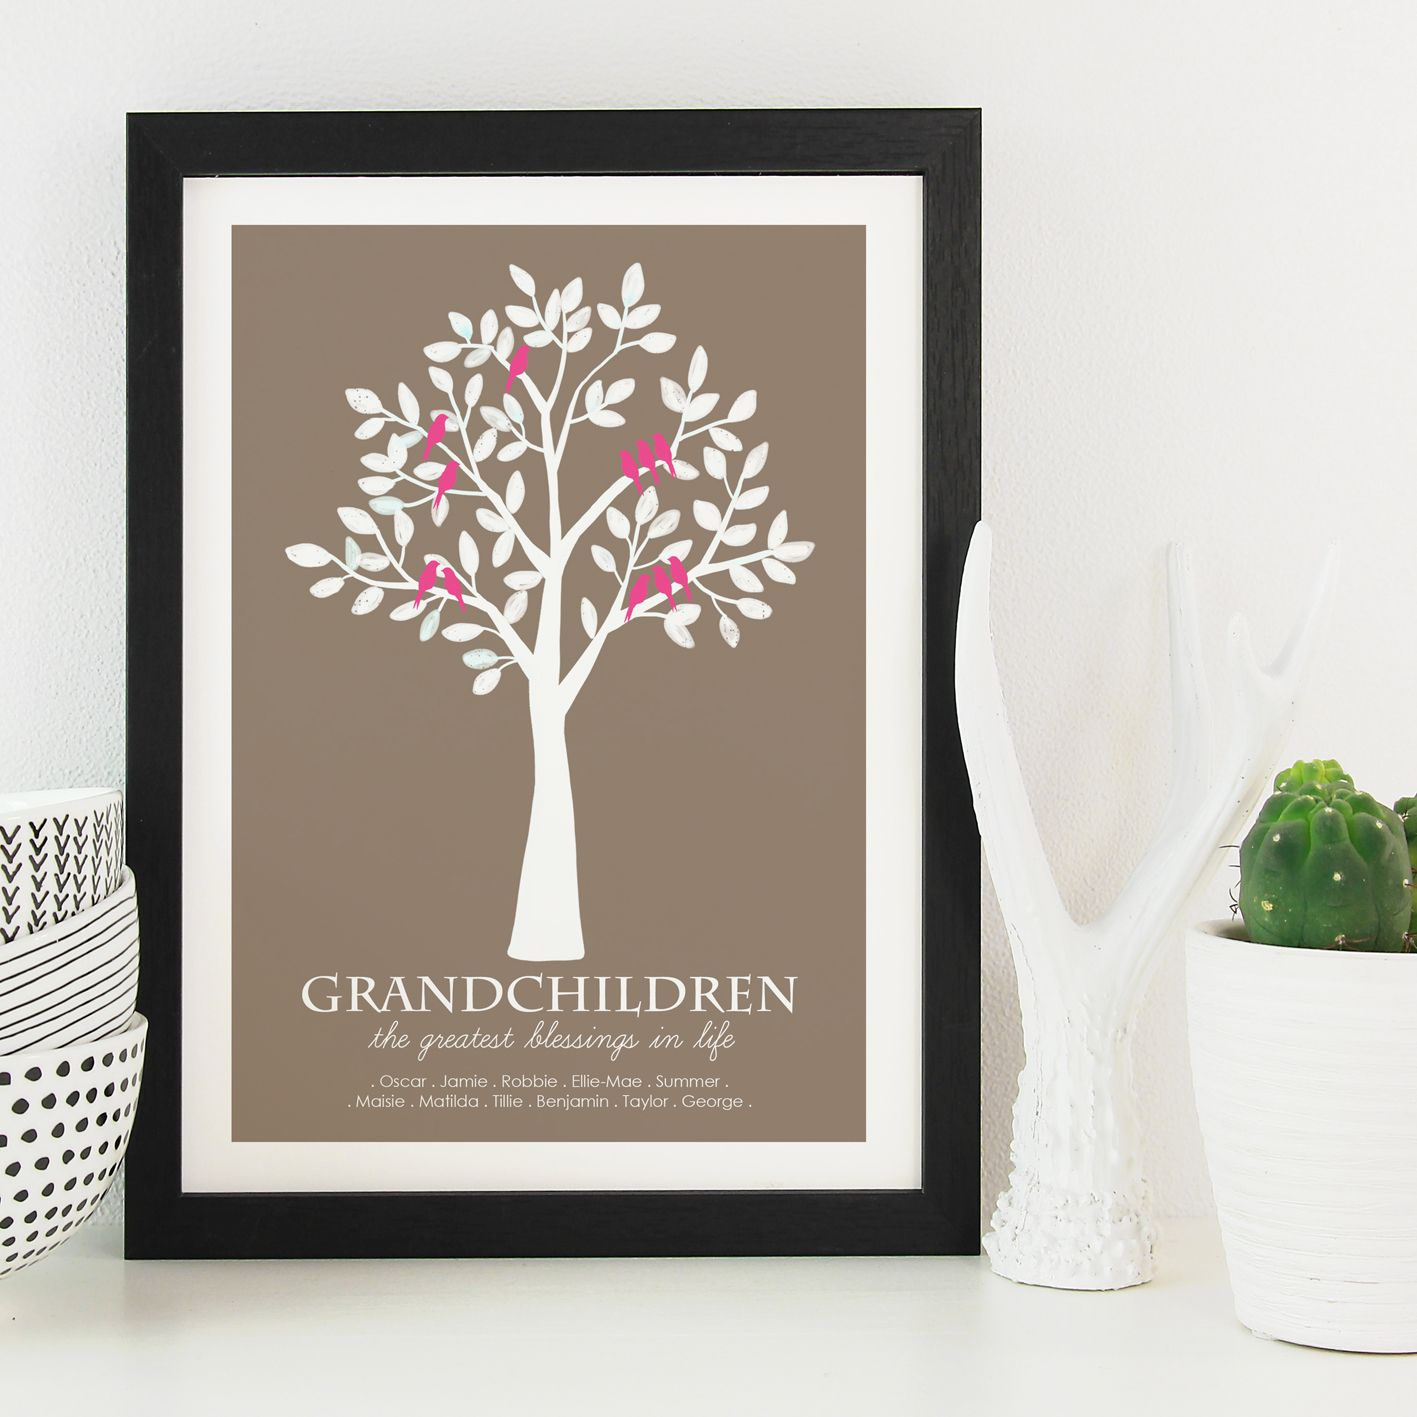 Grandchildren Family personalised gift idea